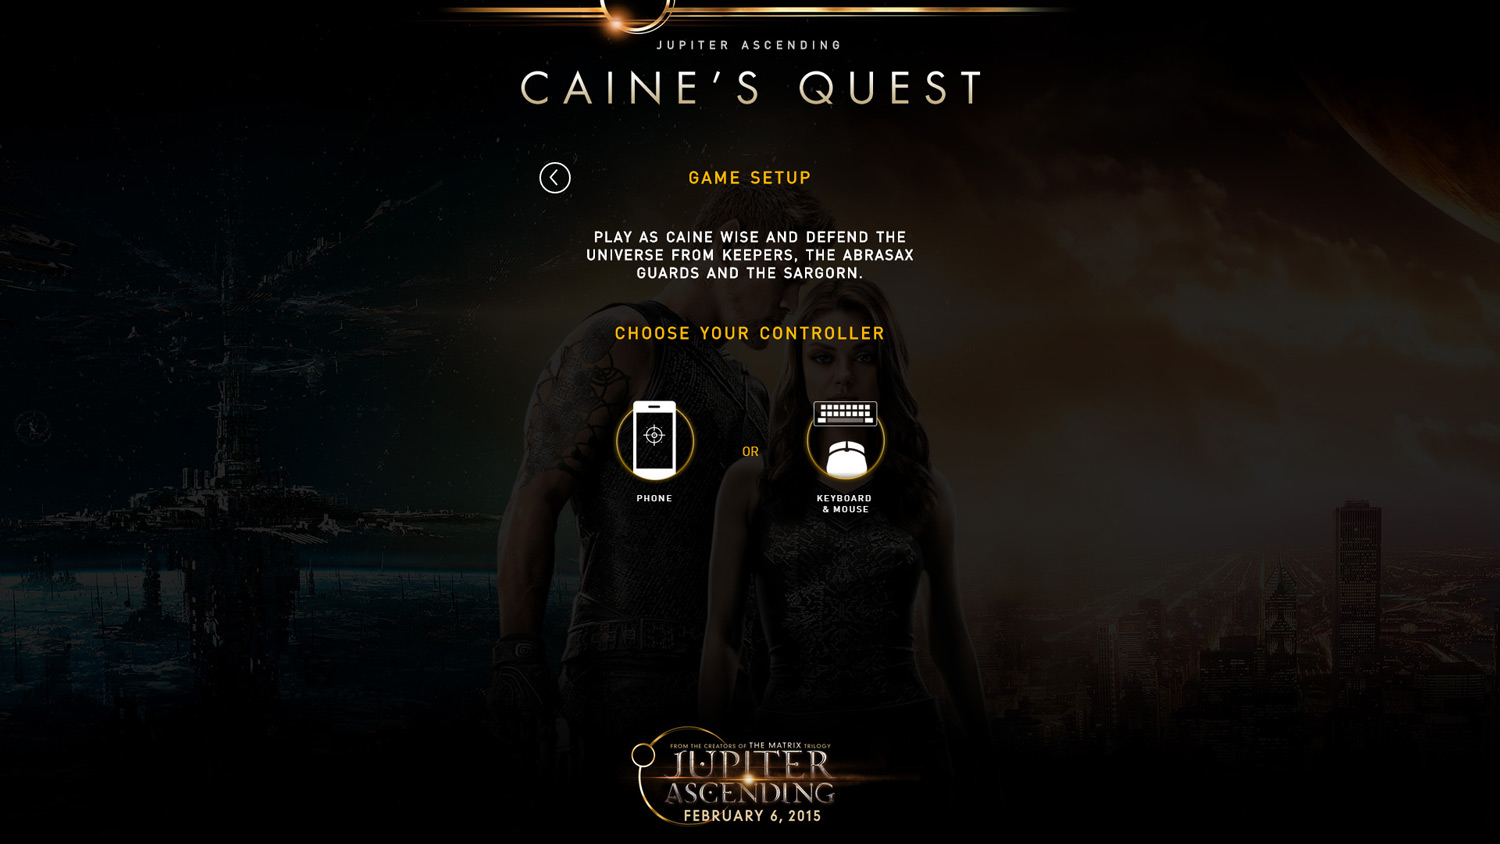 Caine's Quest